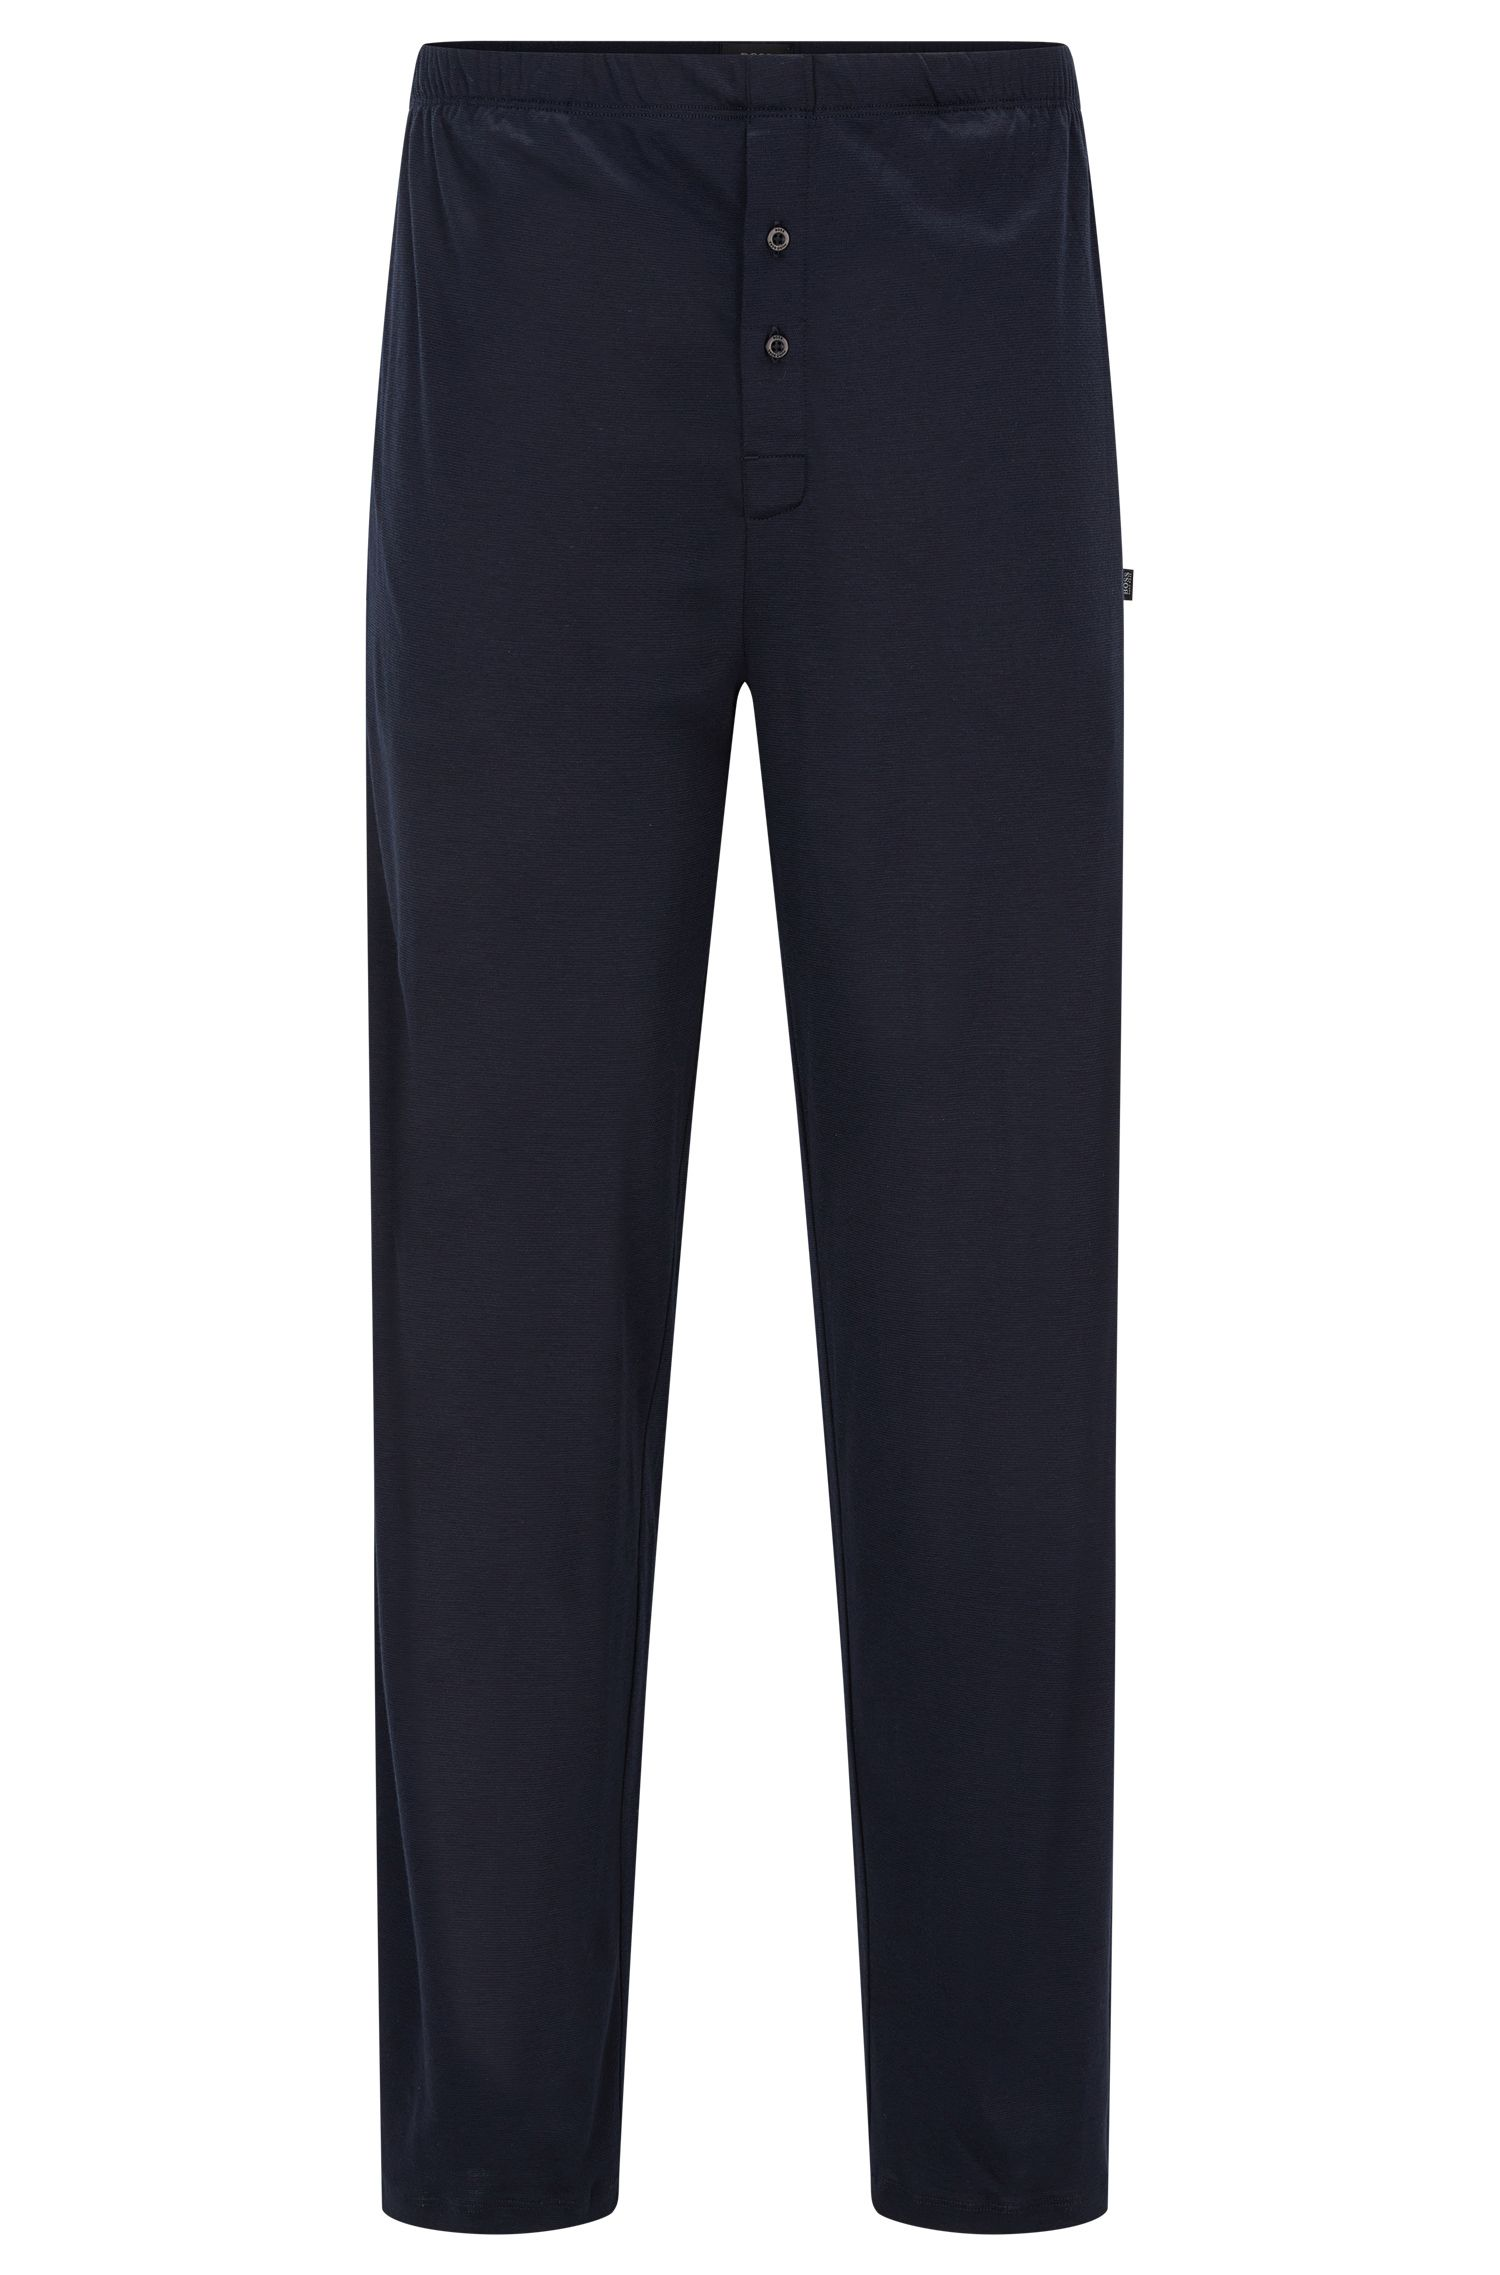 Pyjama bottoms in cotton and modal